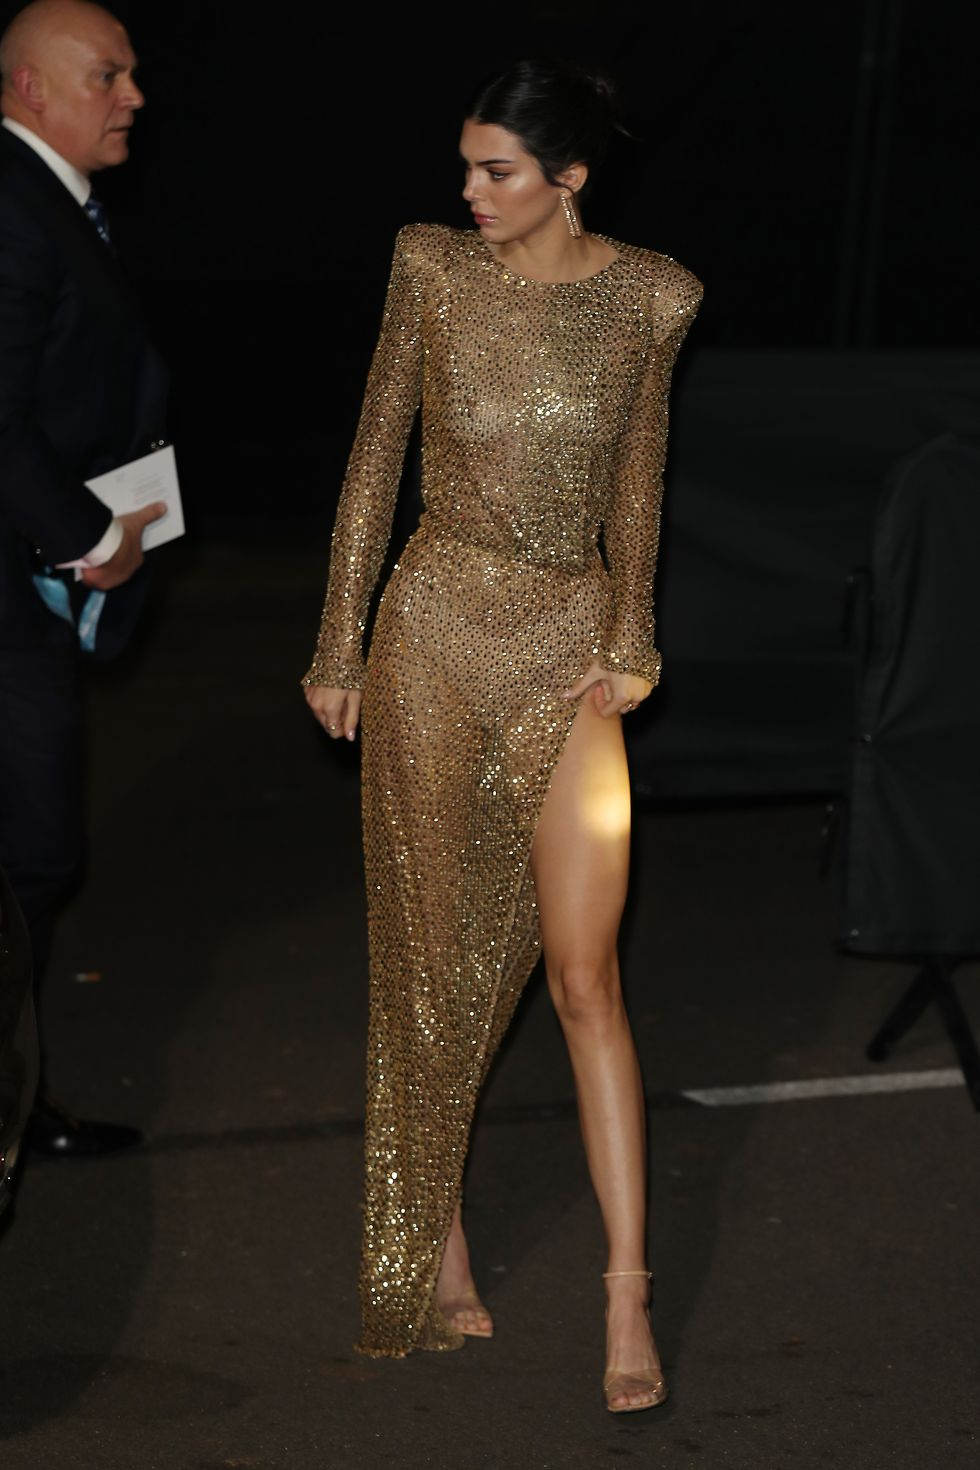 December 10, 2018 Kendall arrived for the The Fashion Awards 2018 in NYC. She, not surprisingly, chose a gold naked dress by Welsh designer Julien Macdonald.